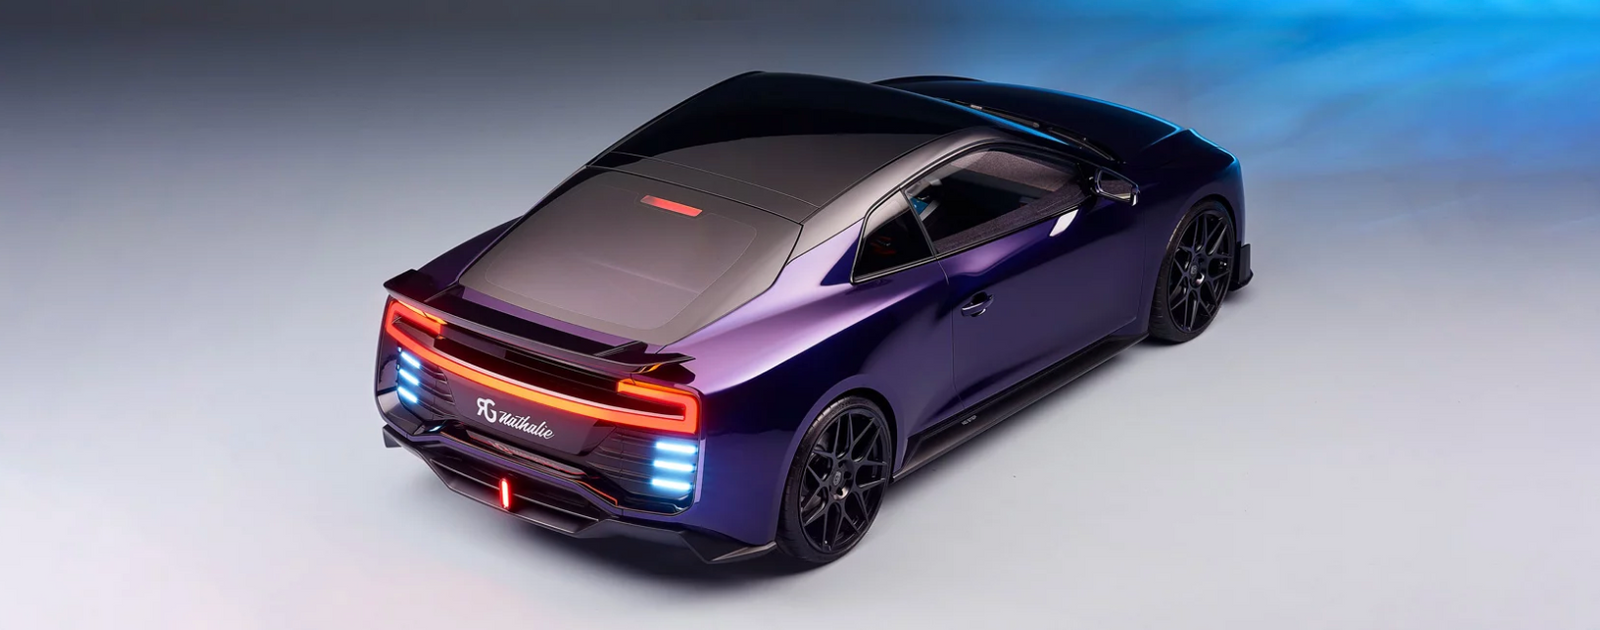 Roland Gumpert's Nathalie Wants to Fix EV Hypermiling